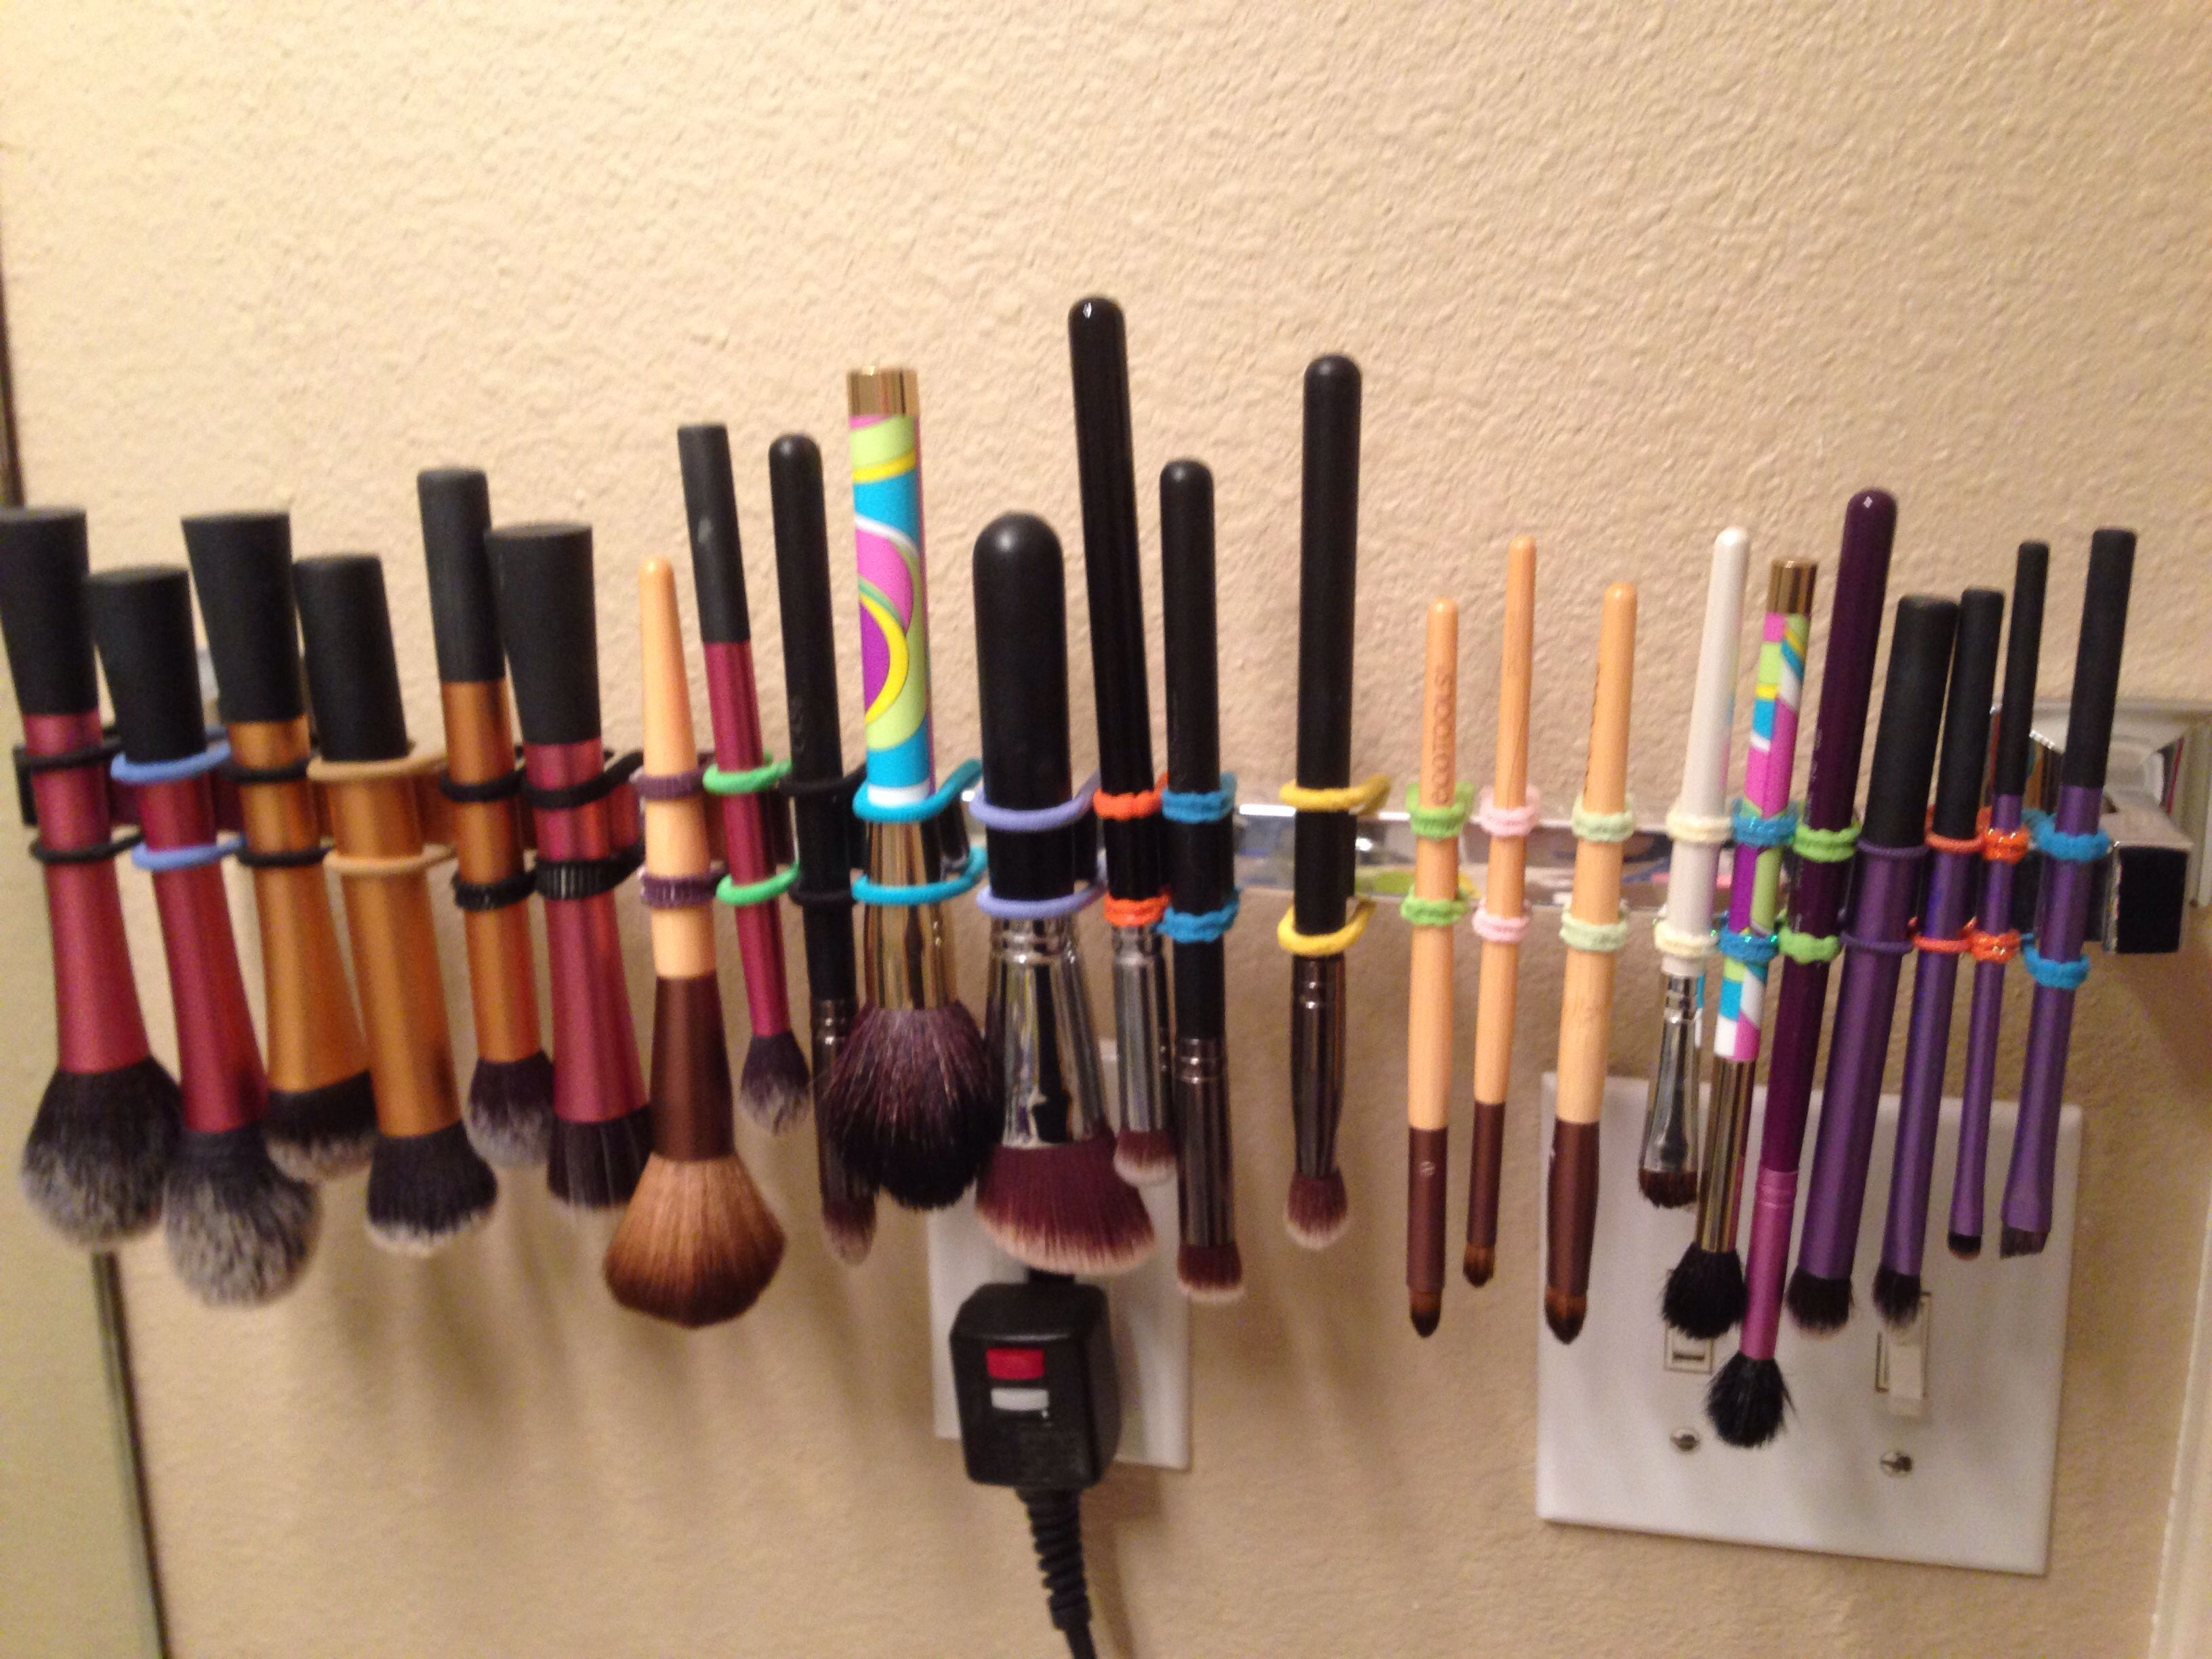 Drying makeup brushes. You don't need an expensive drying